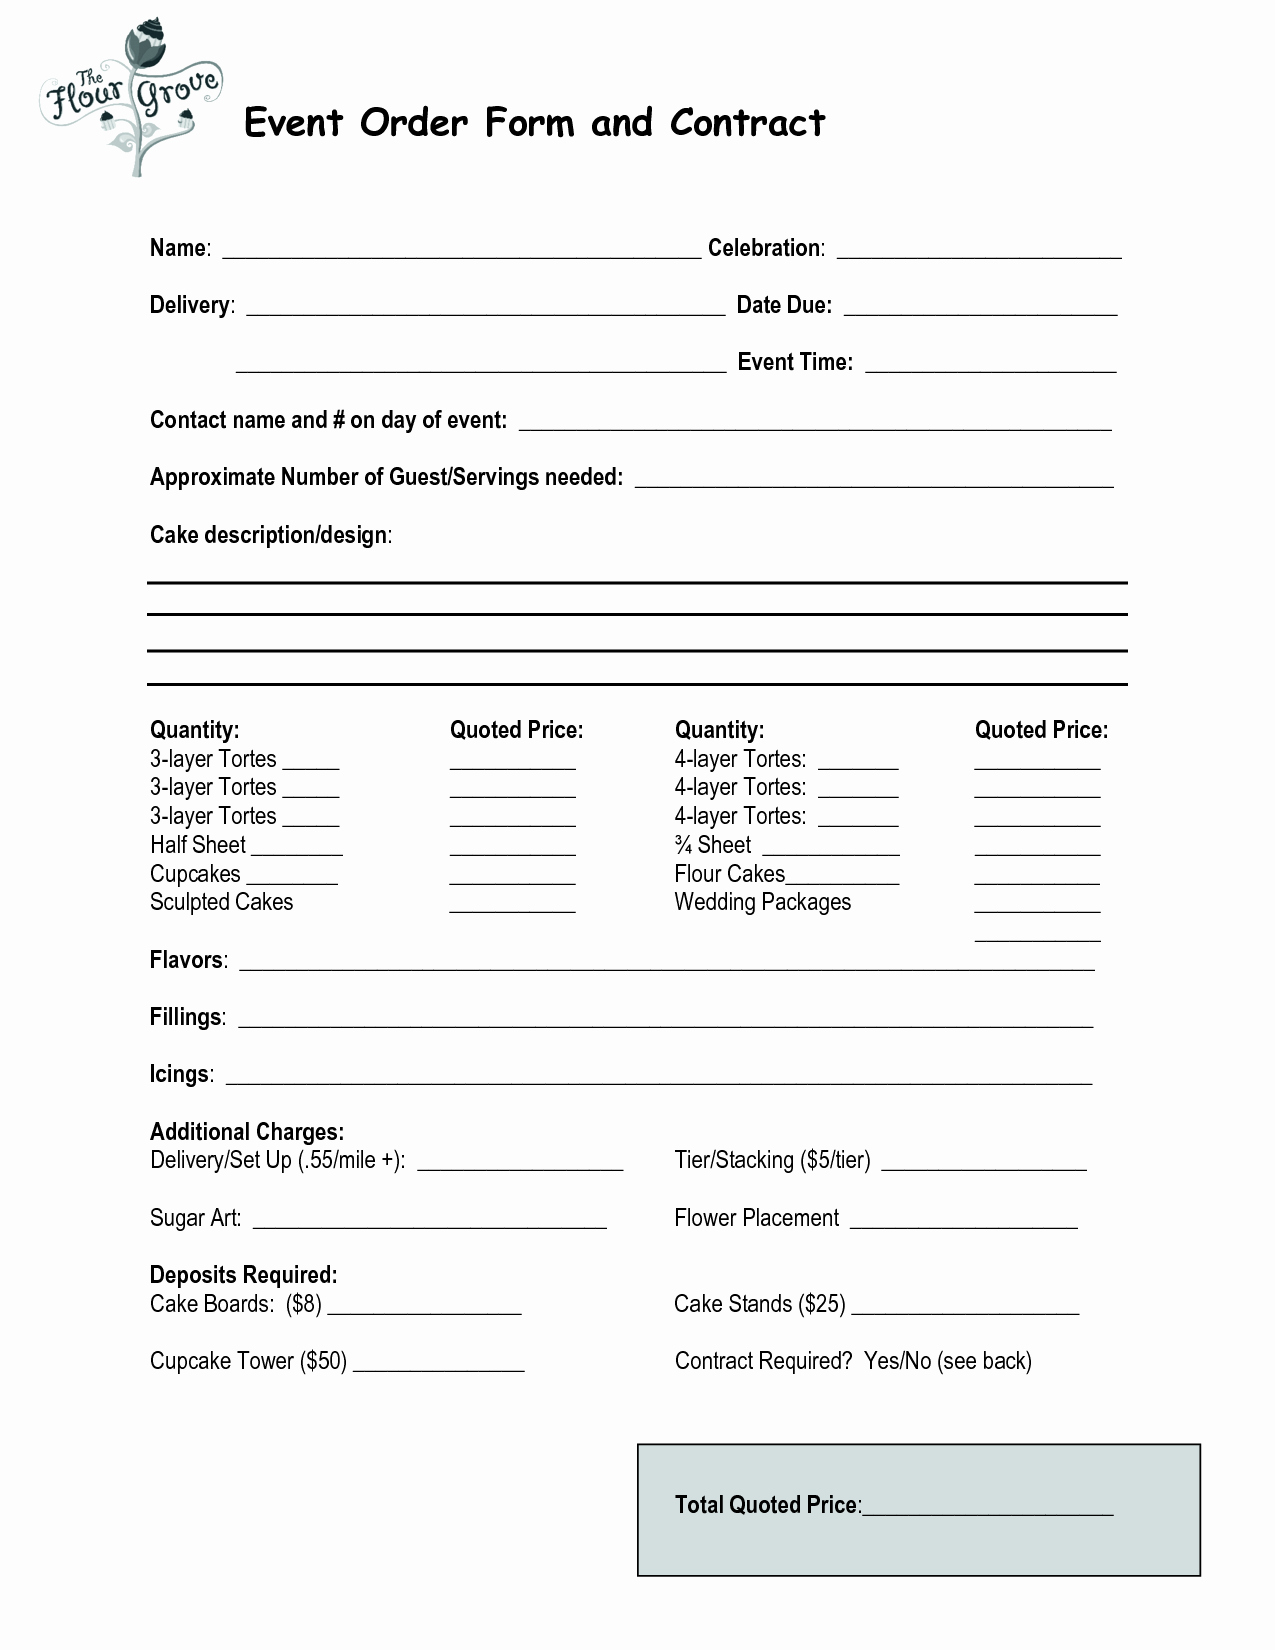 Cake order form Template Word Inspirational Cake order Contract event order form and Contract